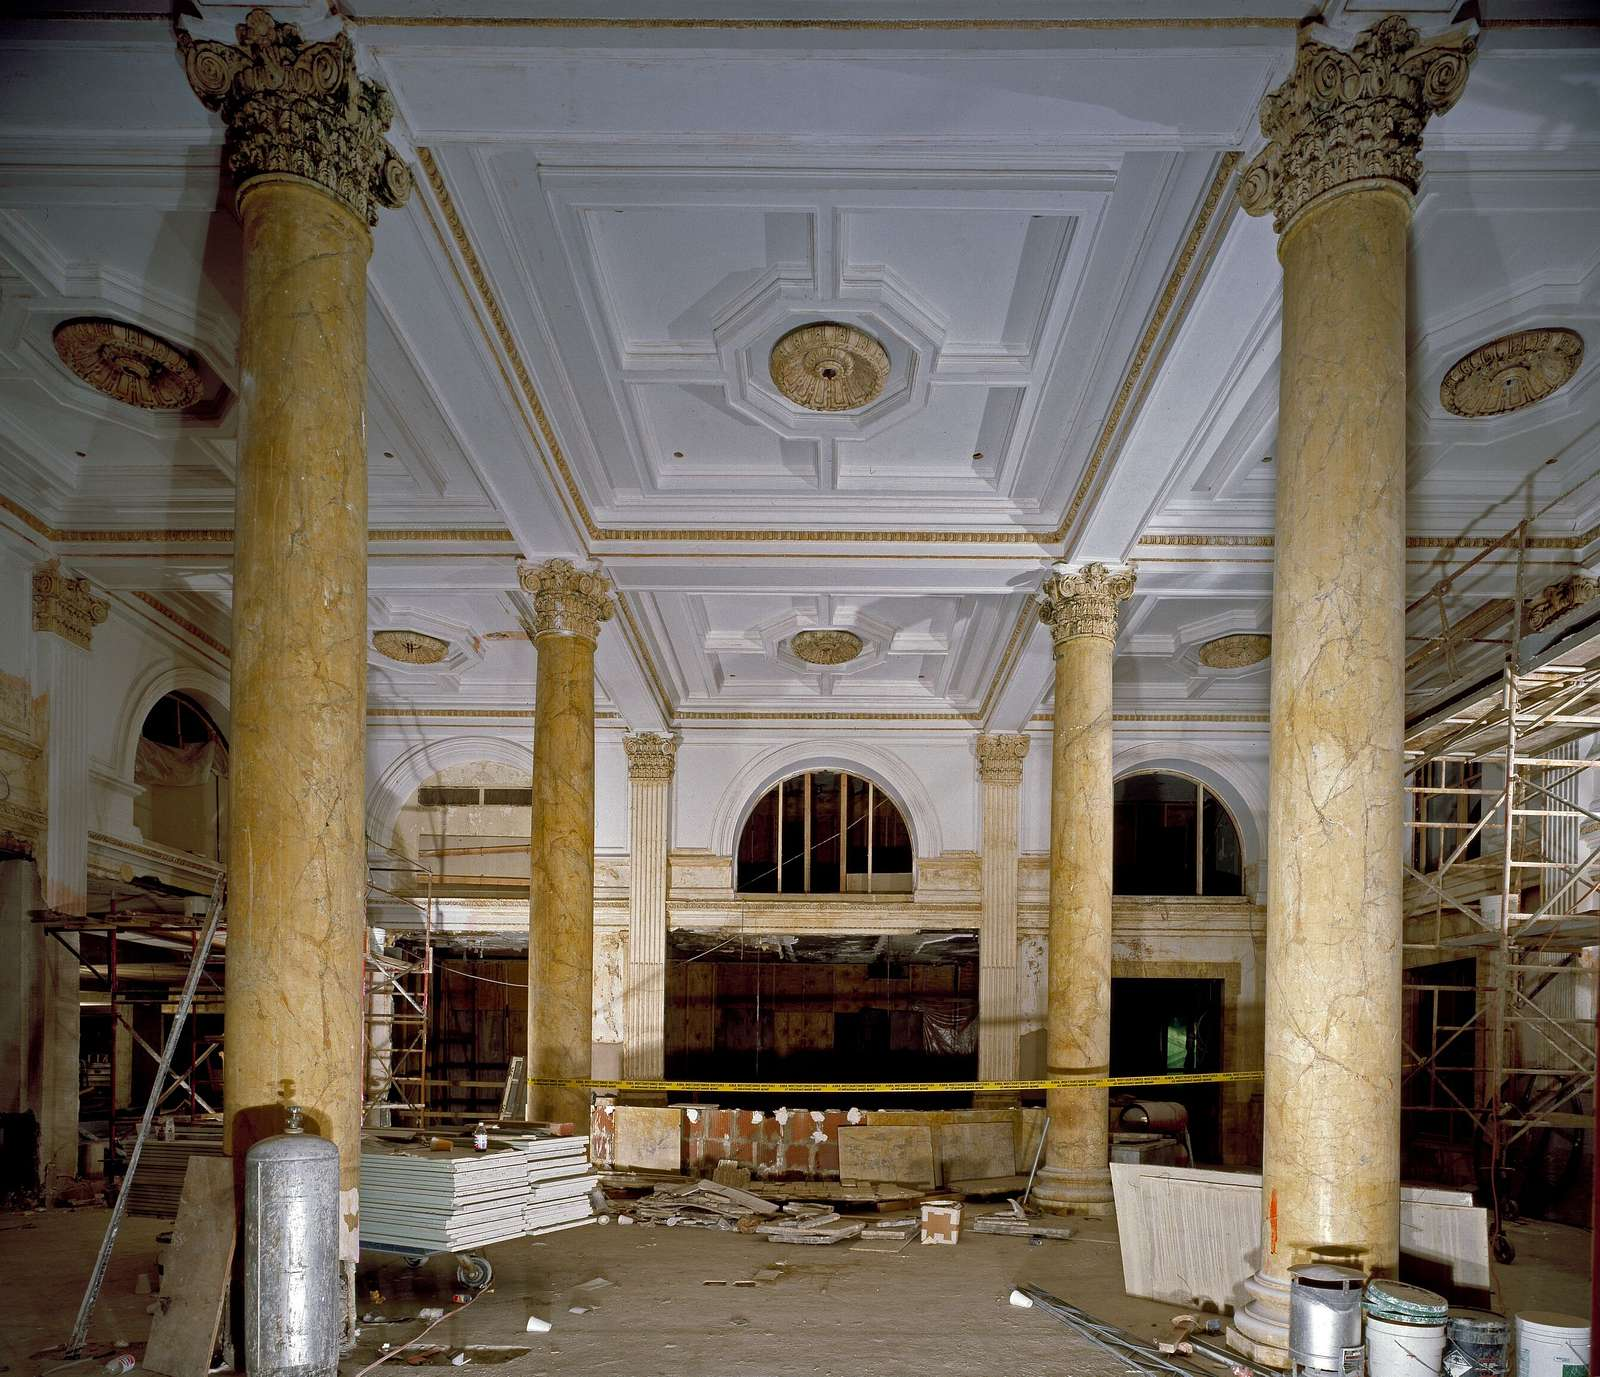 Willard Hotel lobby during a wholesale renovation in the 1980s. Washington, D.C.